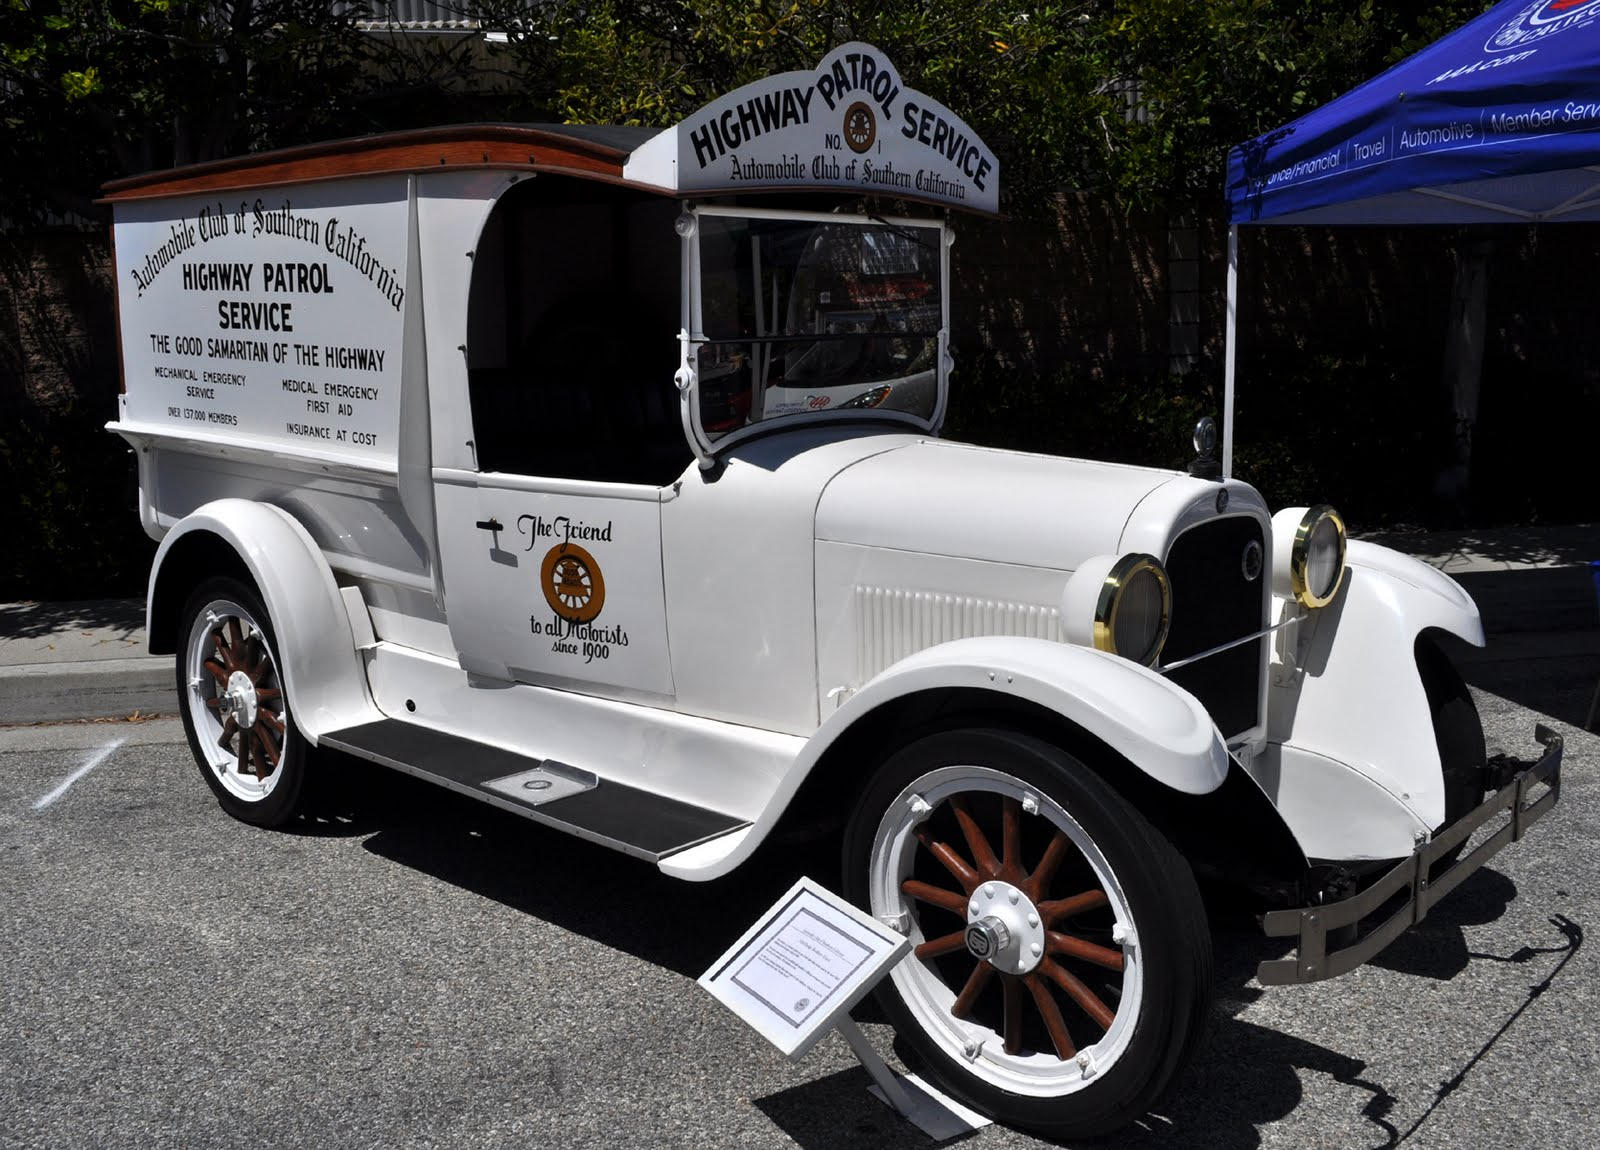 Just a car guy automobile club of southern california for Aaa motor club phone number